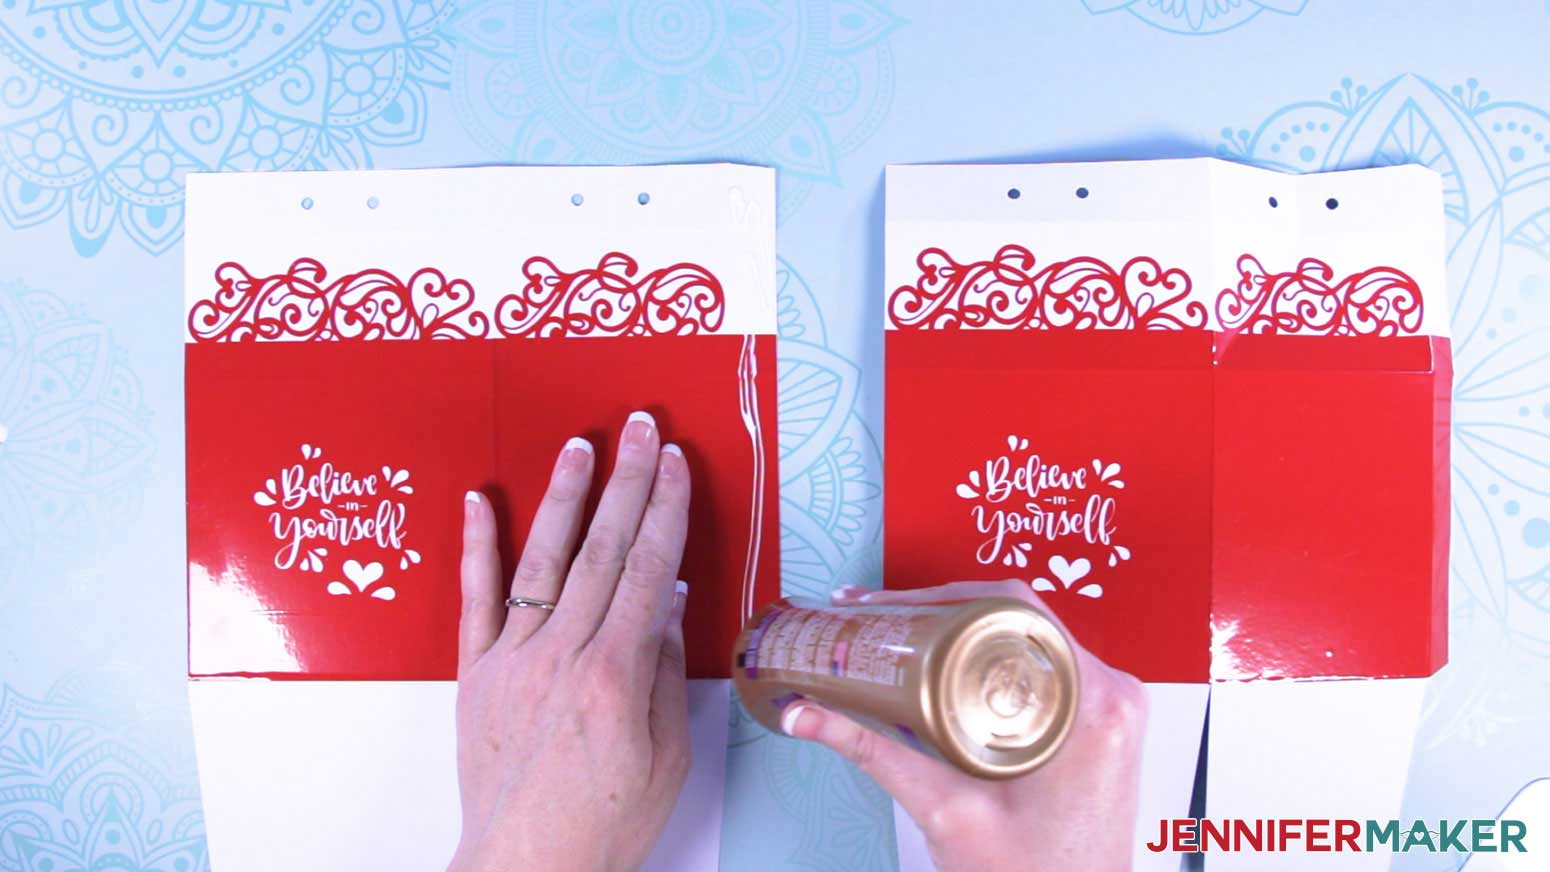 Apply glue to the section tabs of the milk carton mug gift boxes